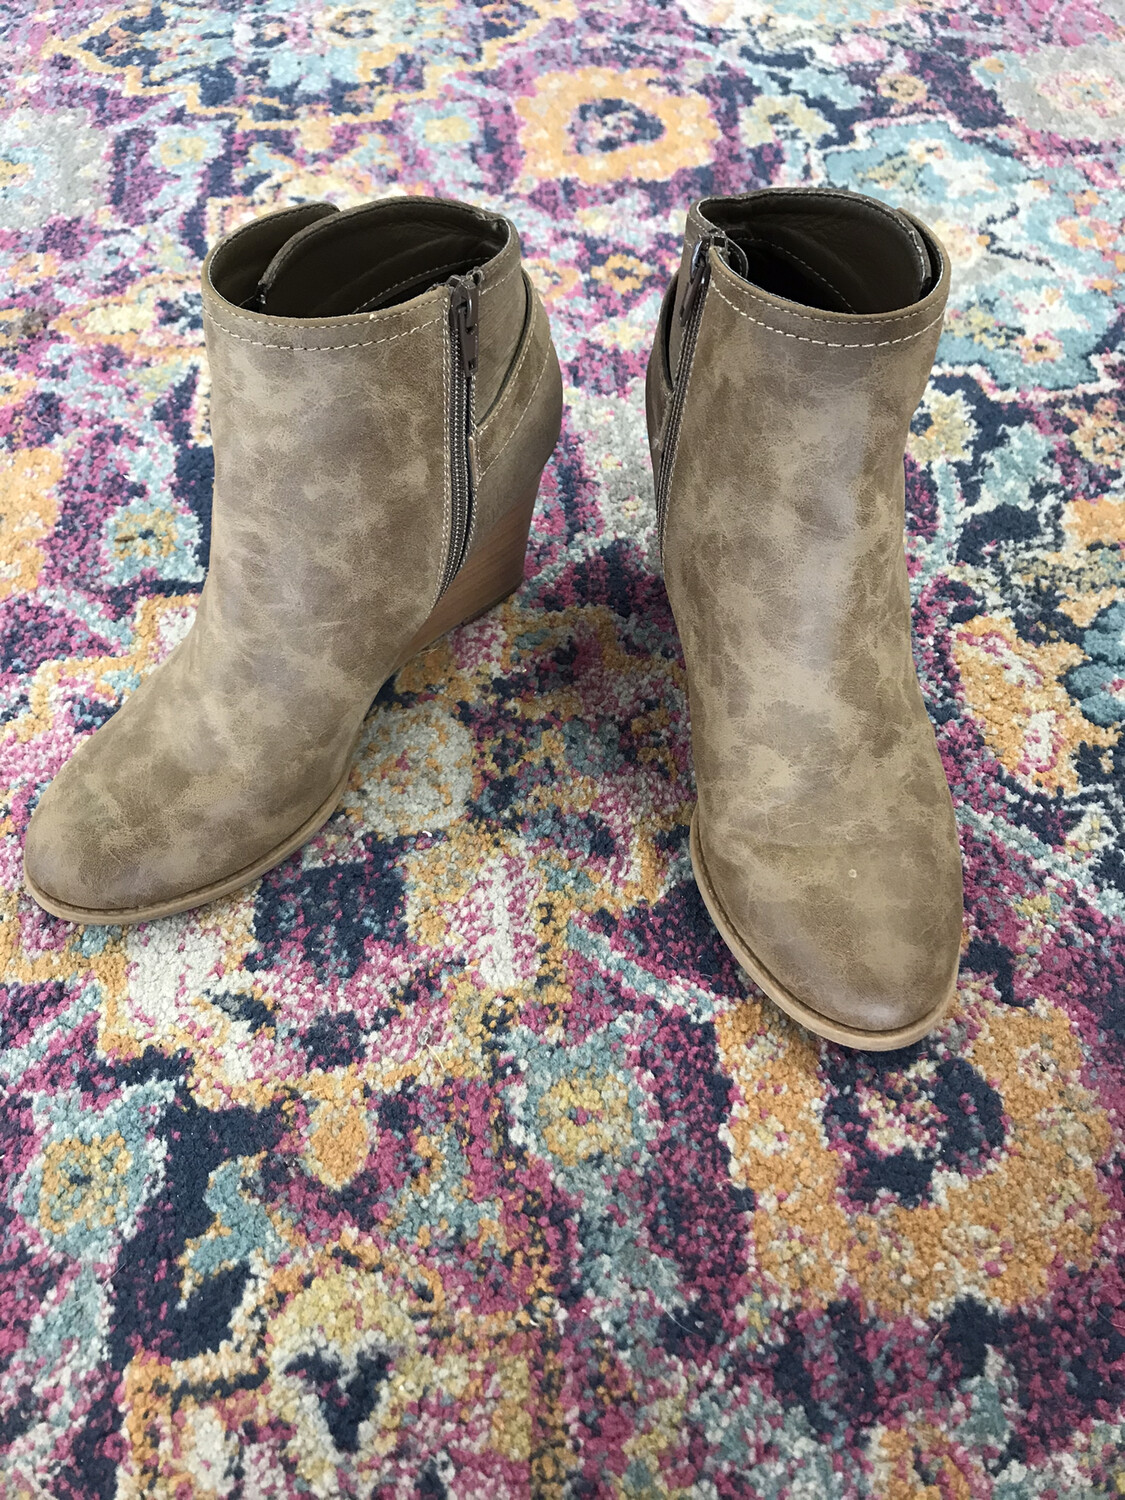 Brown Booties - Size 8.5